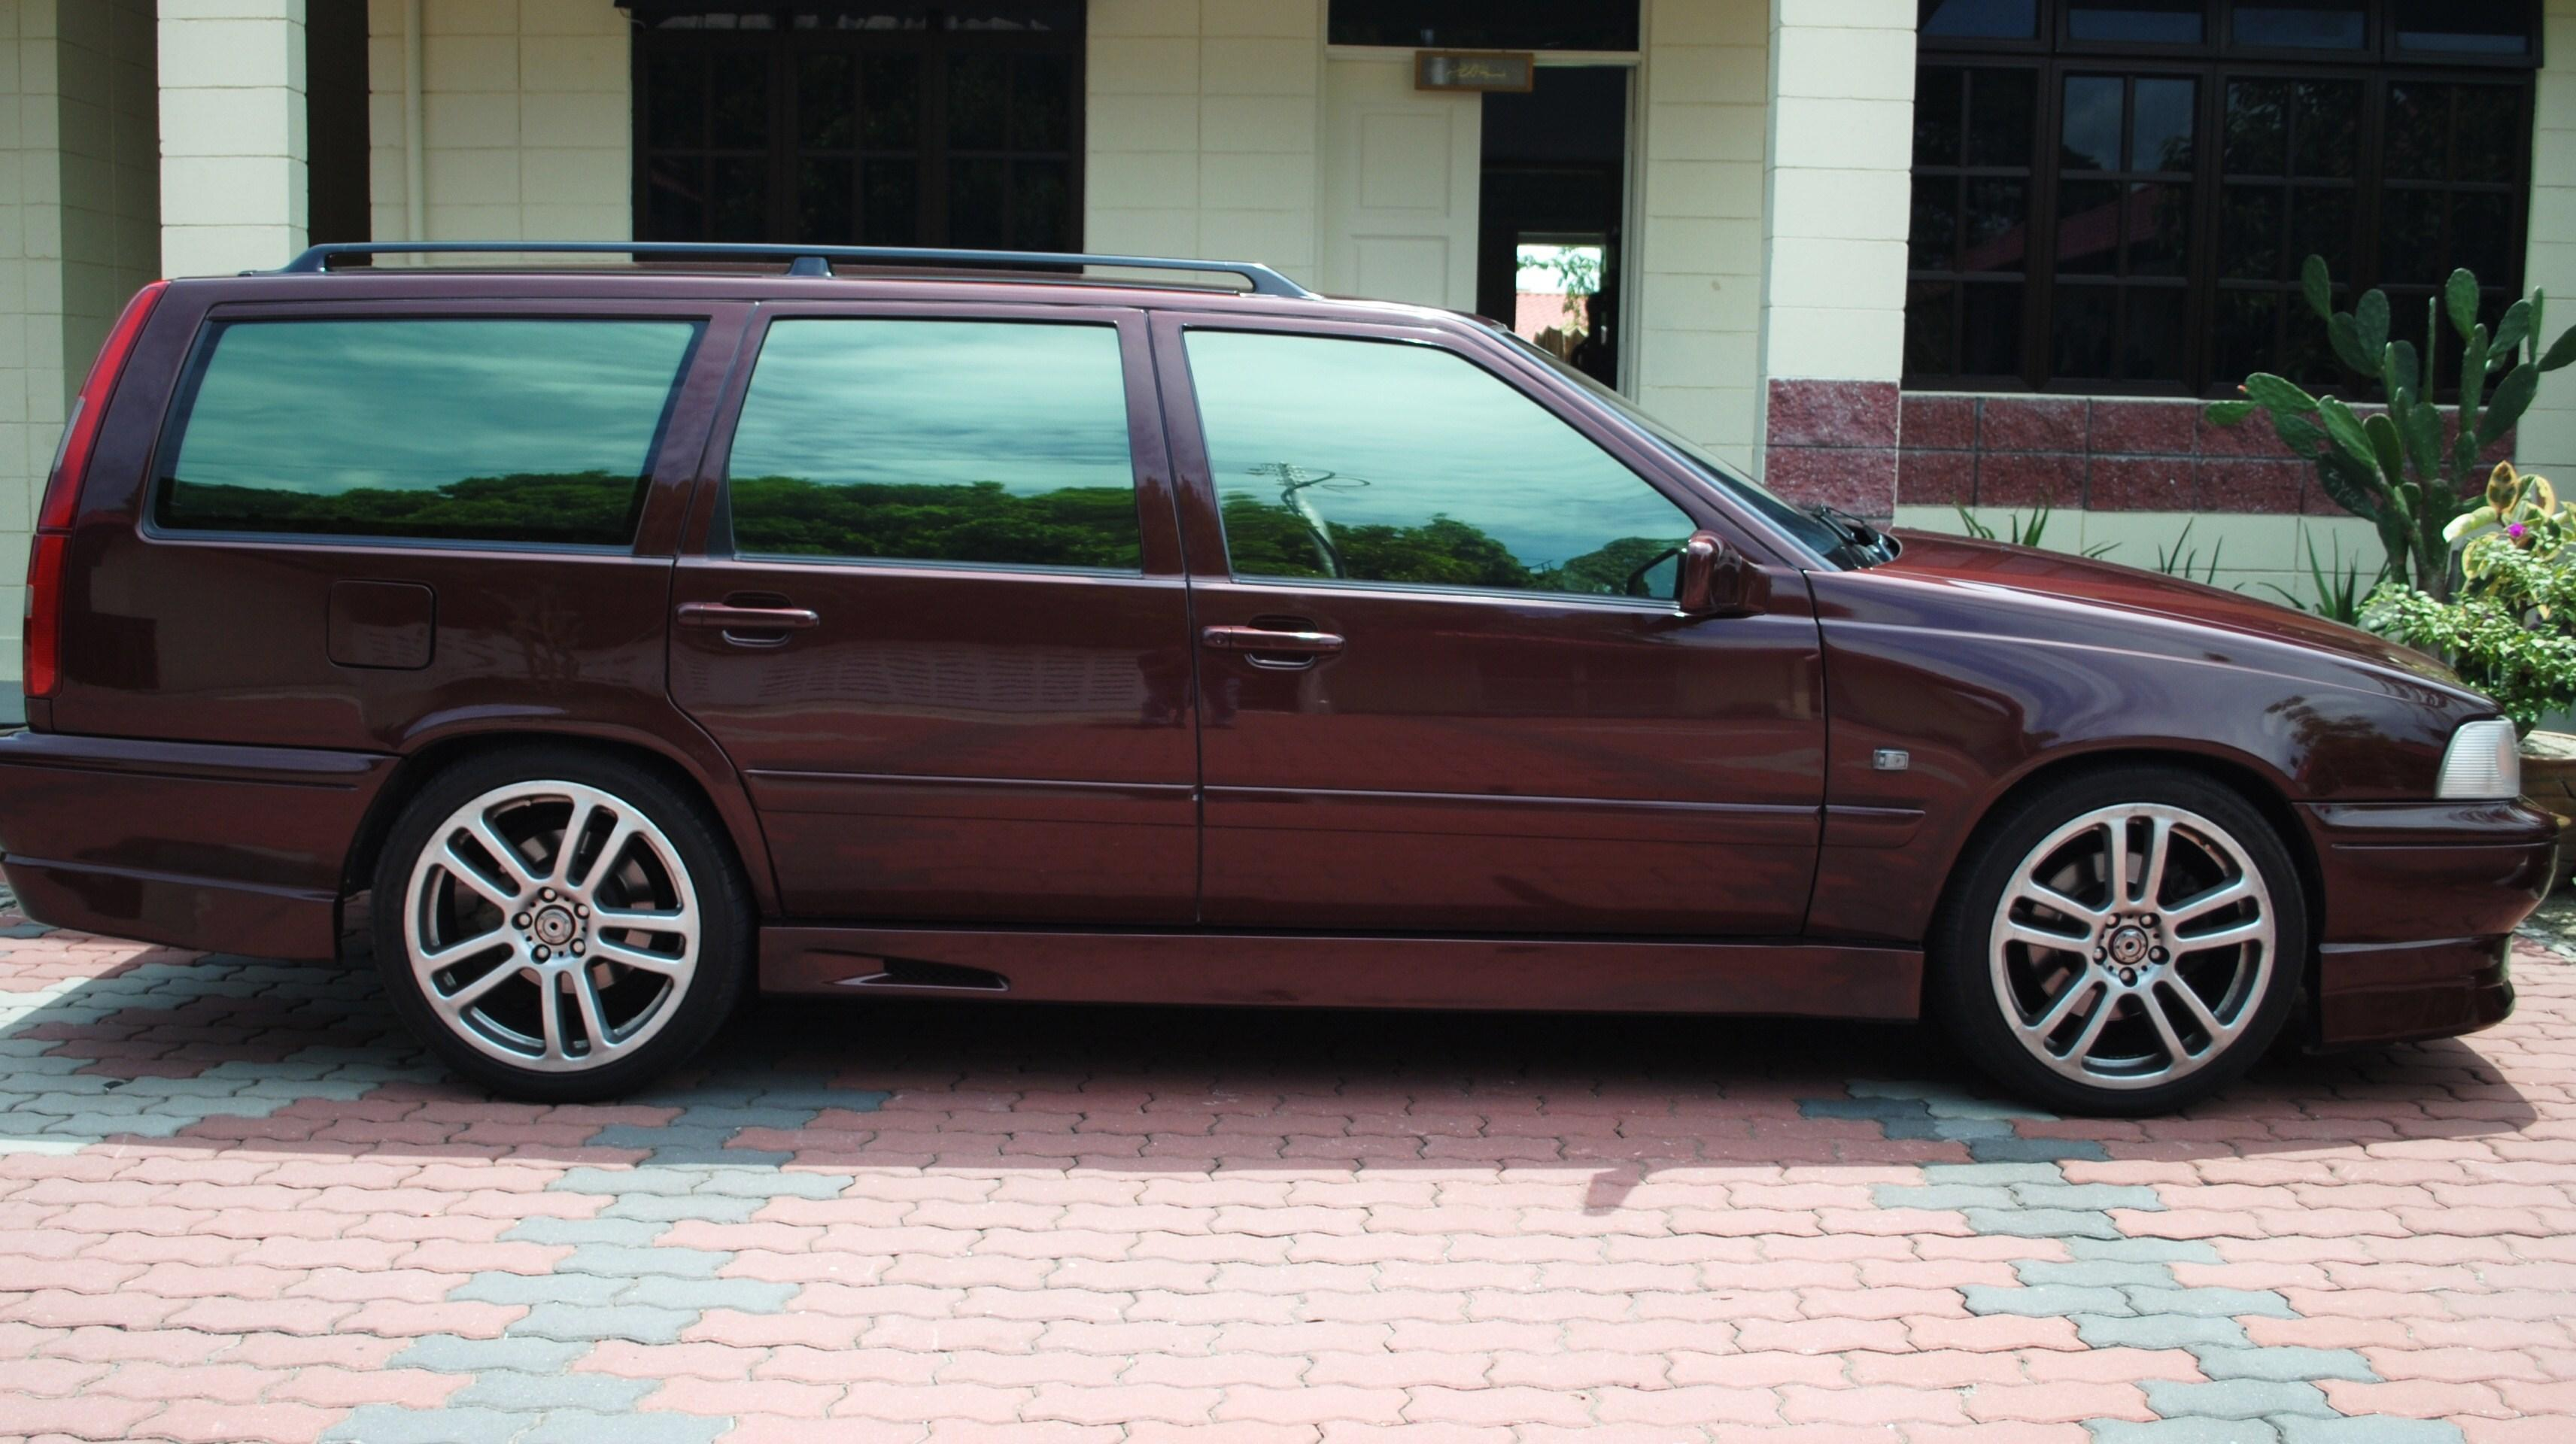 1999 volvo v70 - view all 1999 volvo v70 at cardomain